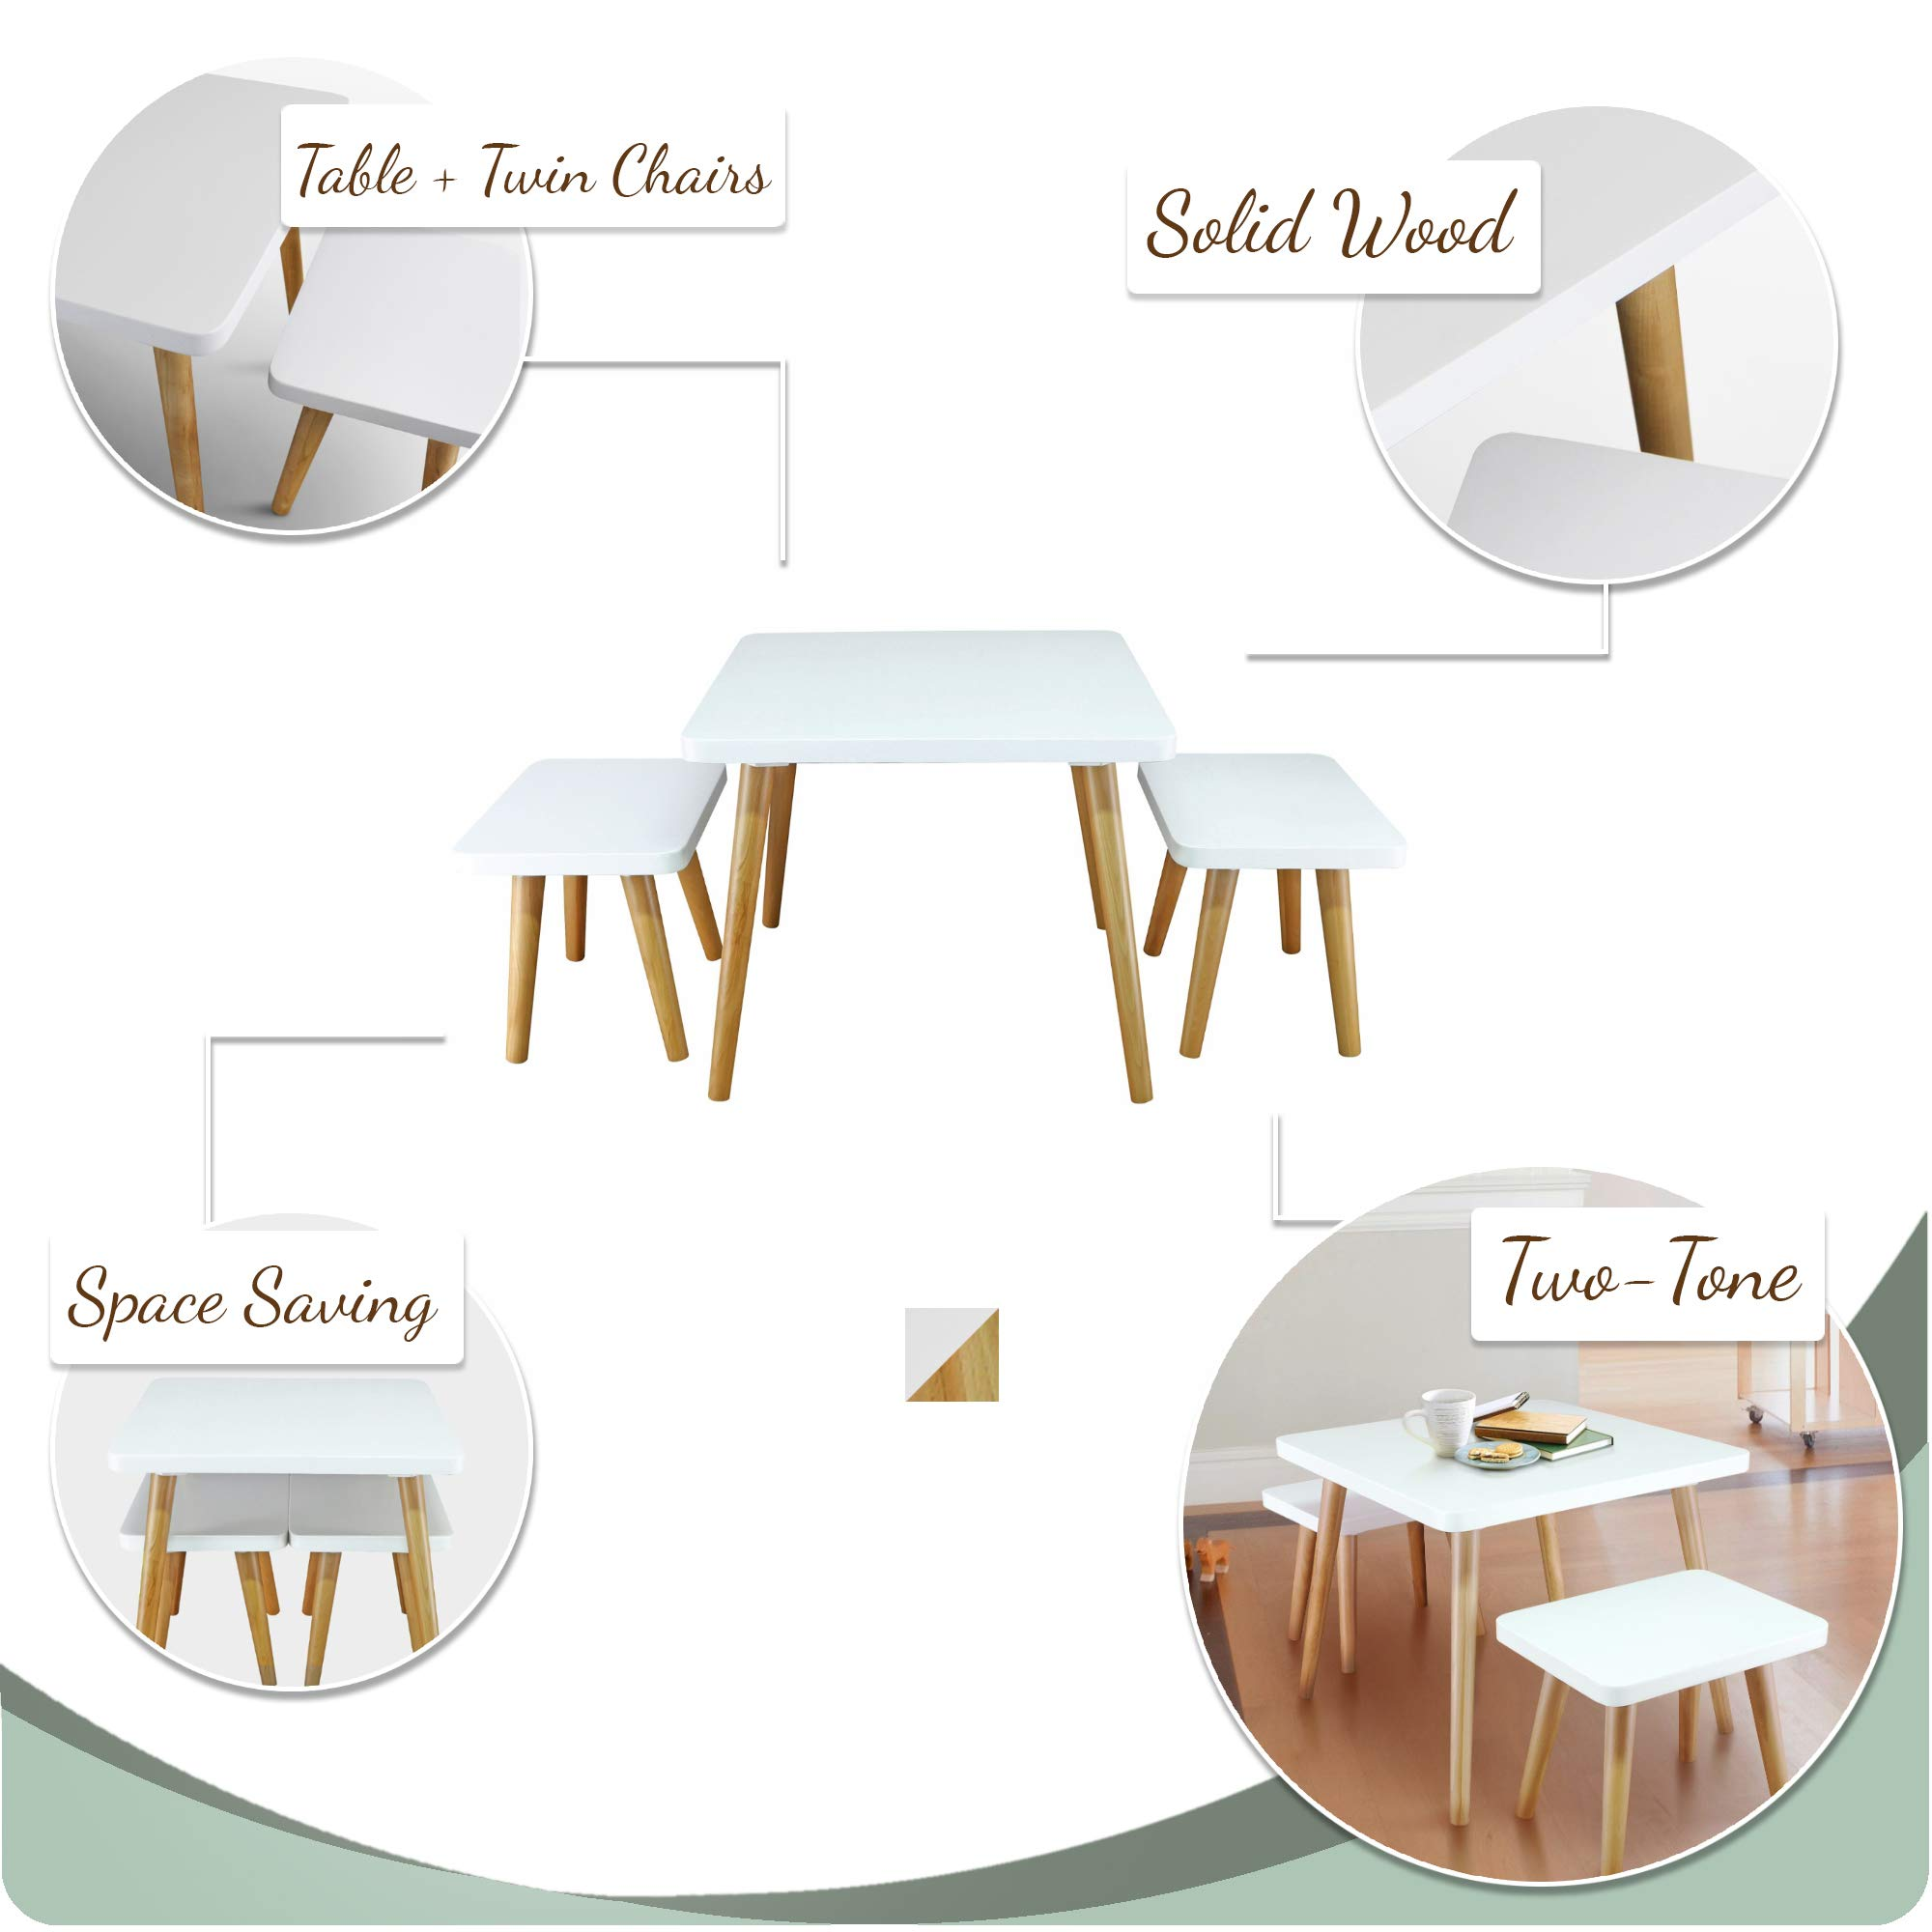 American Trails 560-31 The Easel Table & Chair Set Kid Table, Two-Tone (White, Natural) by American Trails (Image #3)